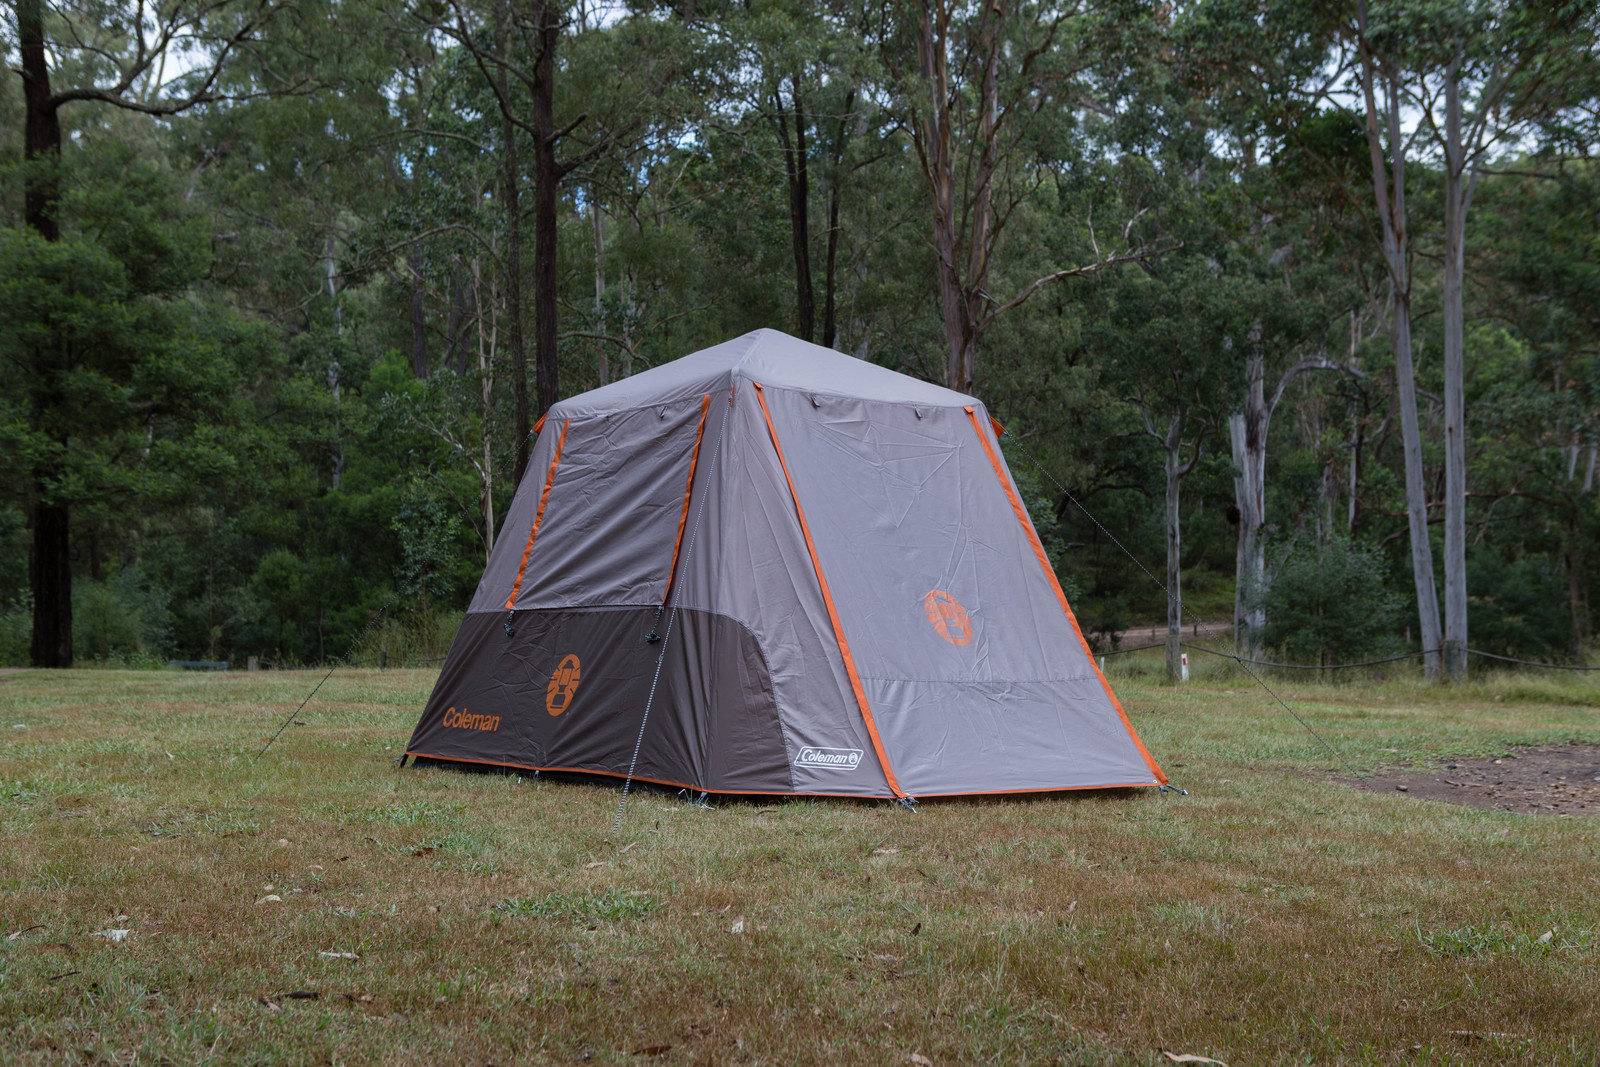 Coleman 6 Person Instant Up Tent - Silver - Full Fly & Coleman 6 Person Instant Up Tent - Silver - Full Fly - Tentworld